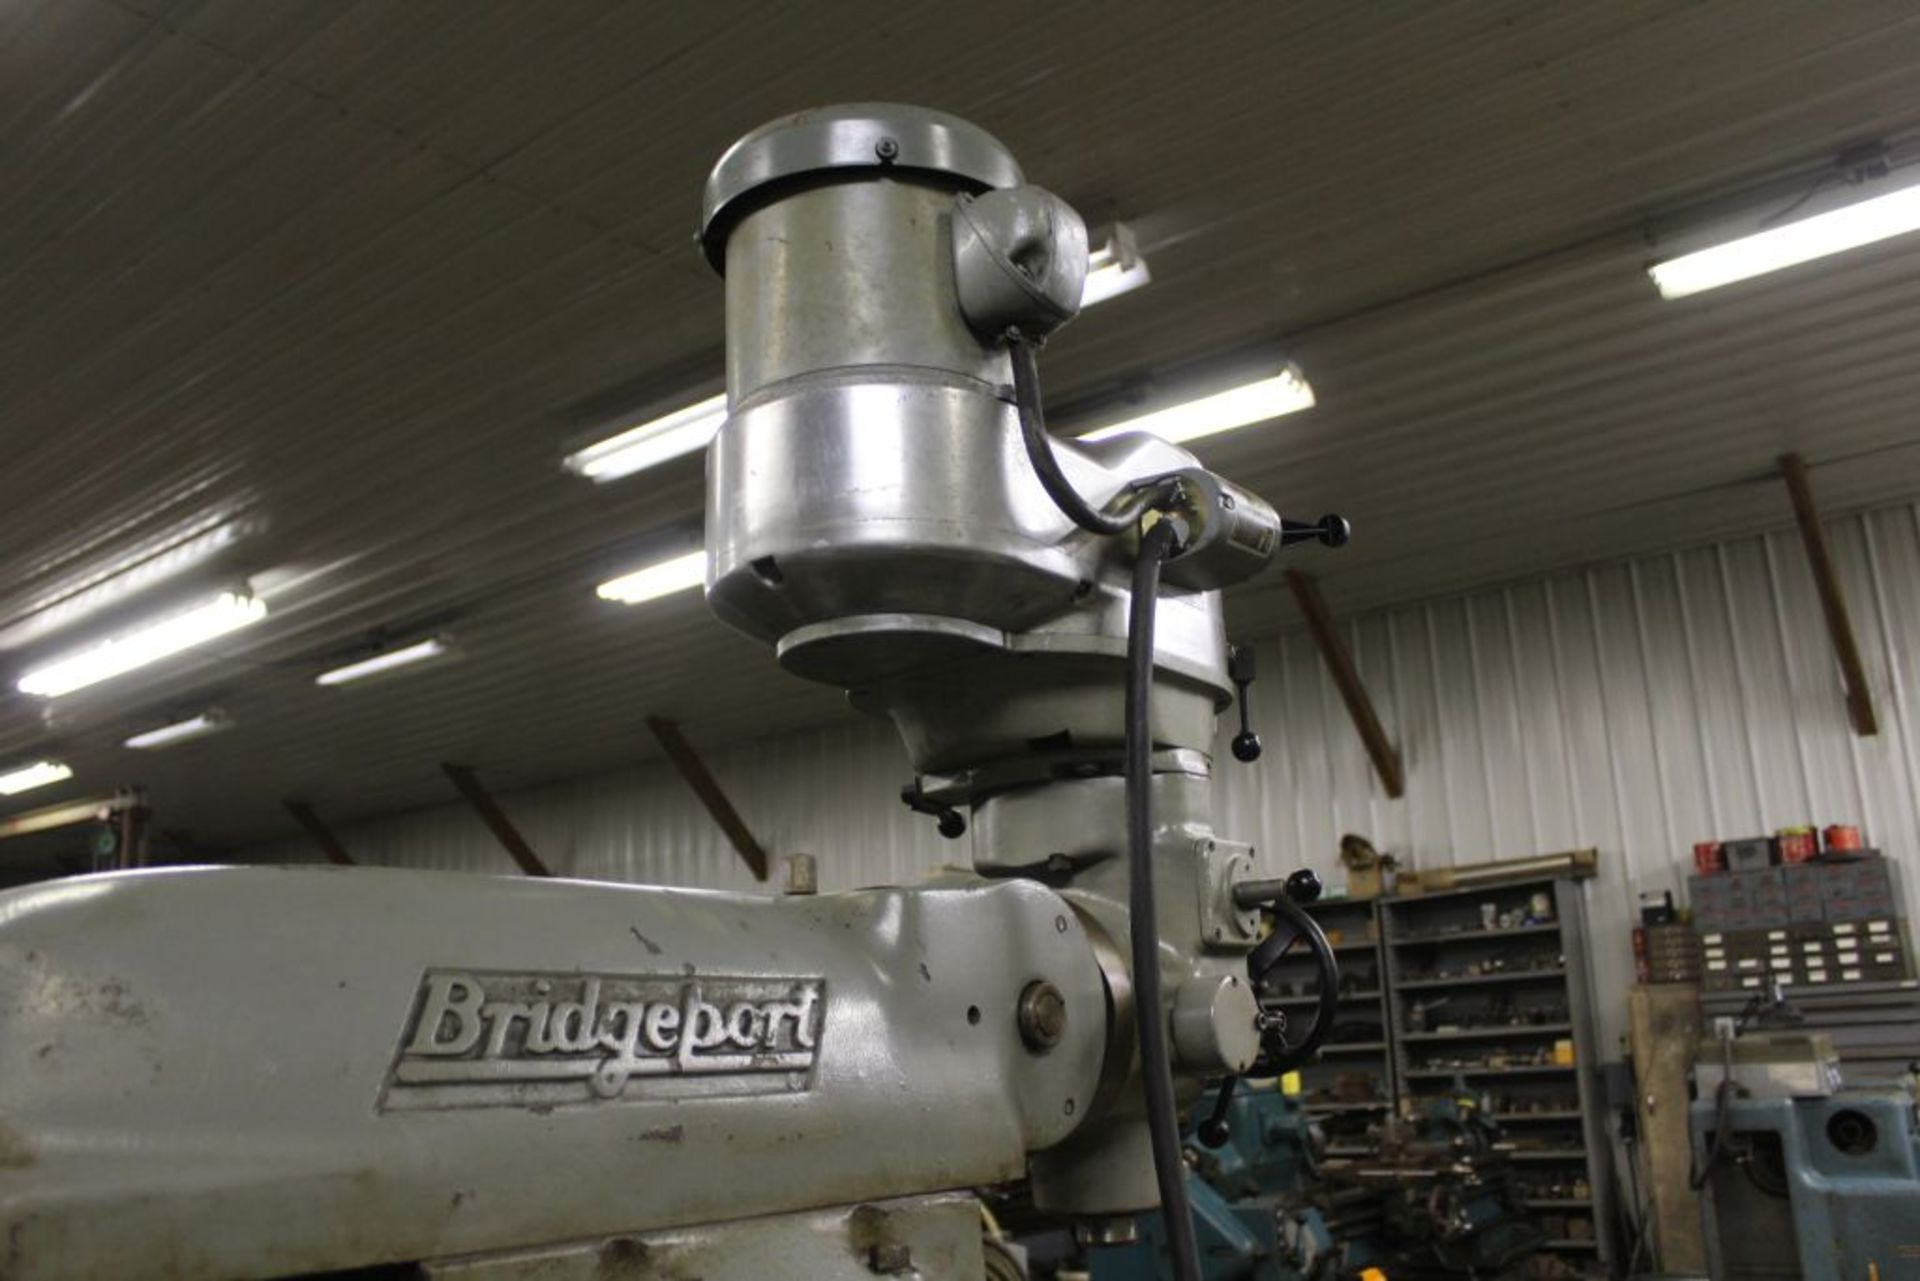 """Bridgeport mill, model 12-BR, sn 83978, 9"""" x 48"""" bed, manual (not down power), shaping attachment. - Image 5 of 15"""